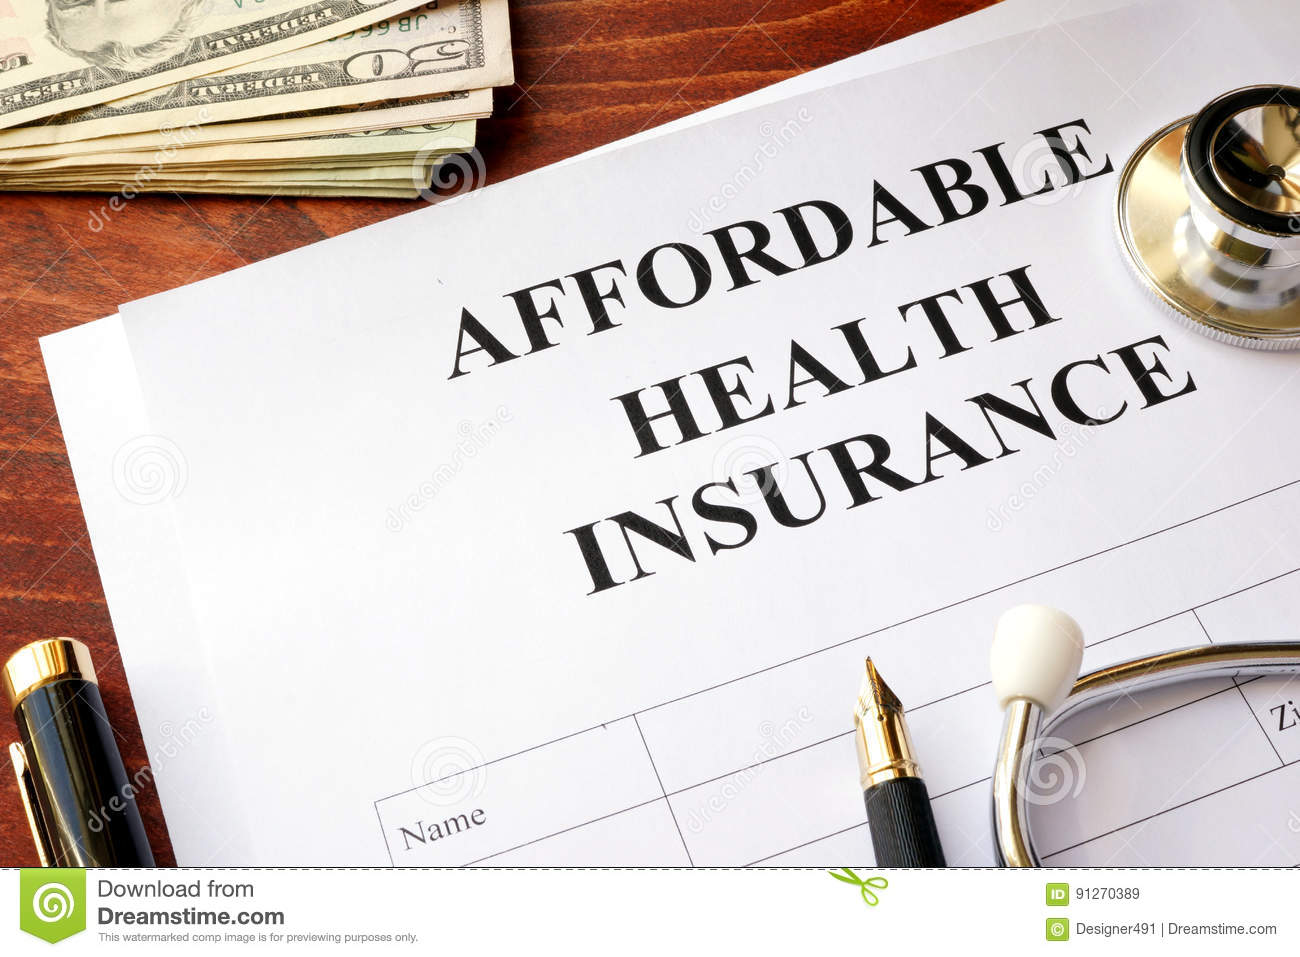 Affordable Health Insurance  Stock Image - Image of